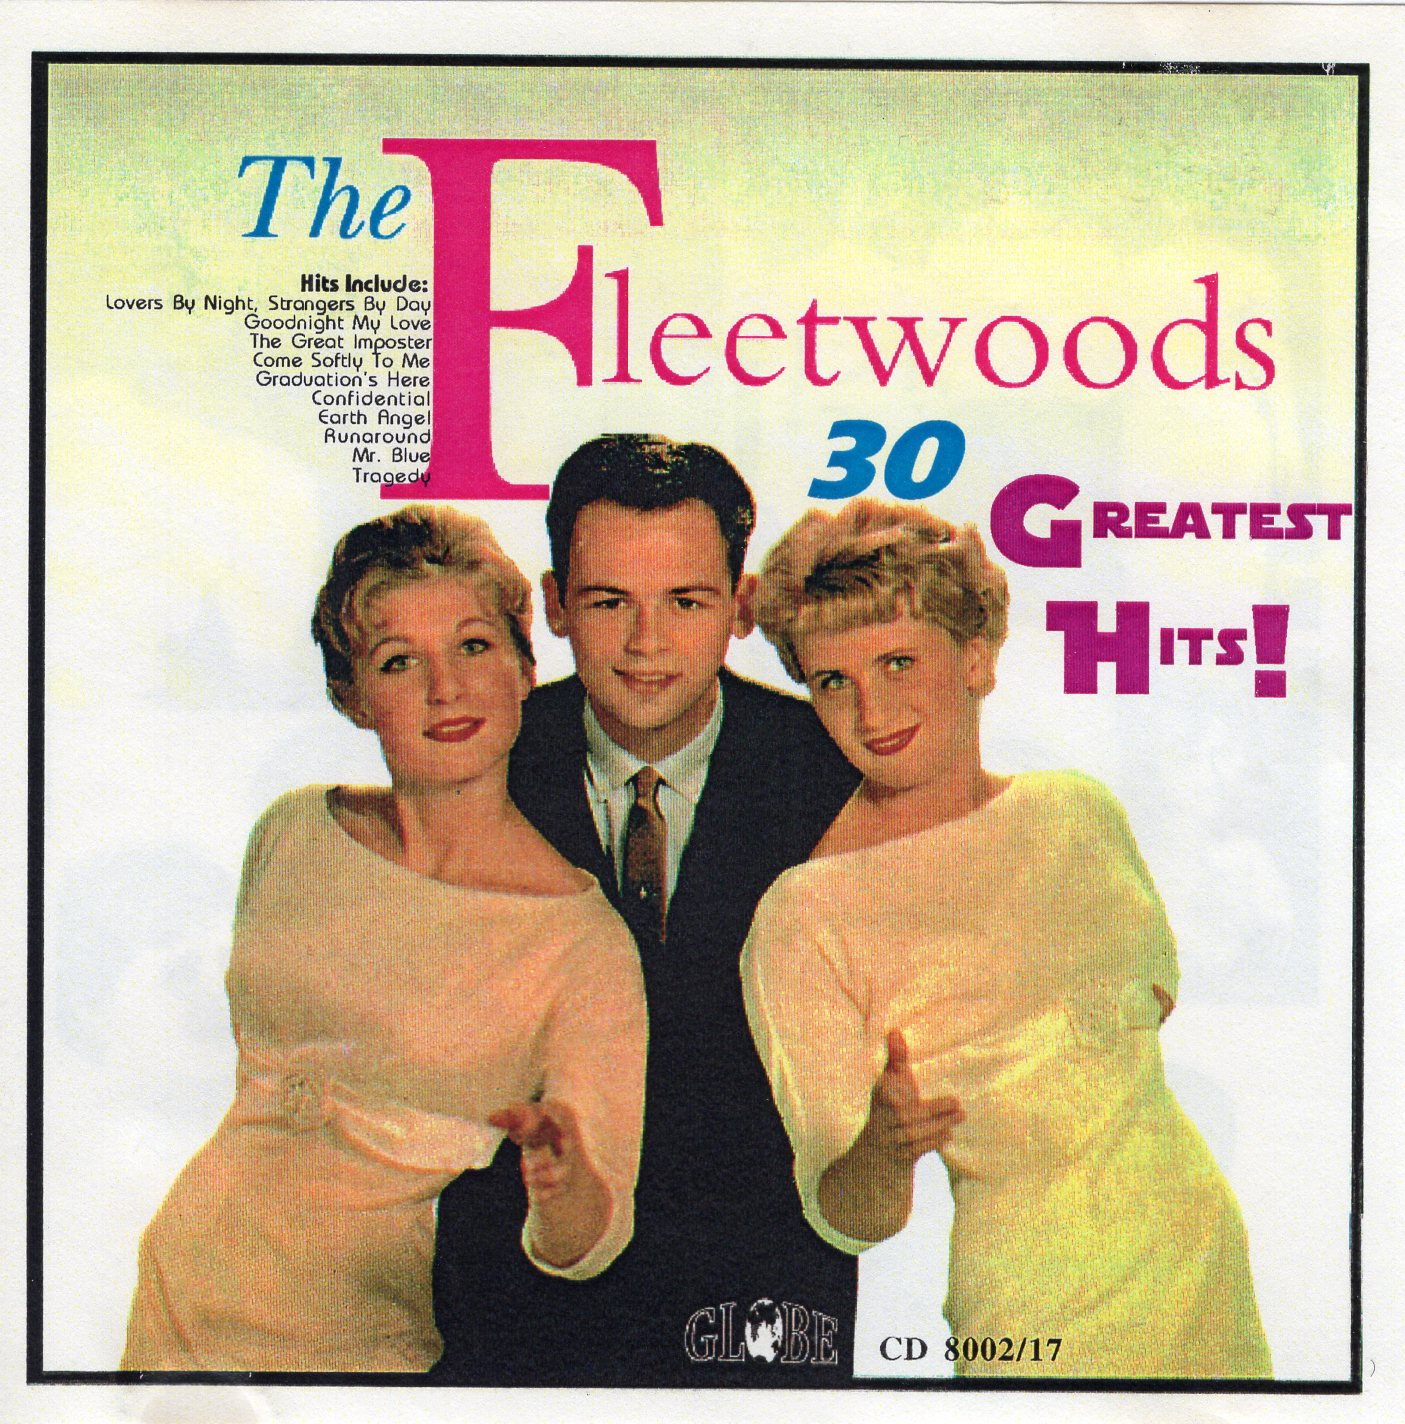 """The Fleetwoods 30 Greatest Hits!"" The Fleetwoods"